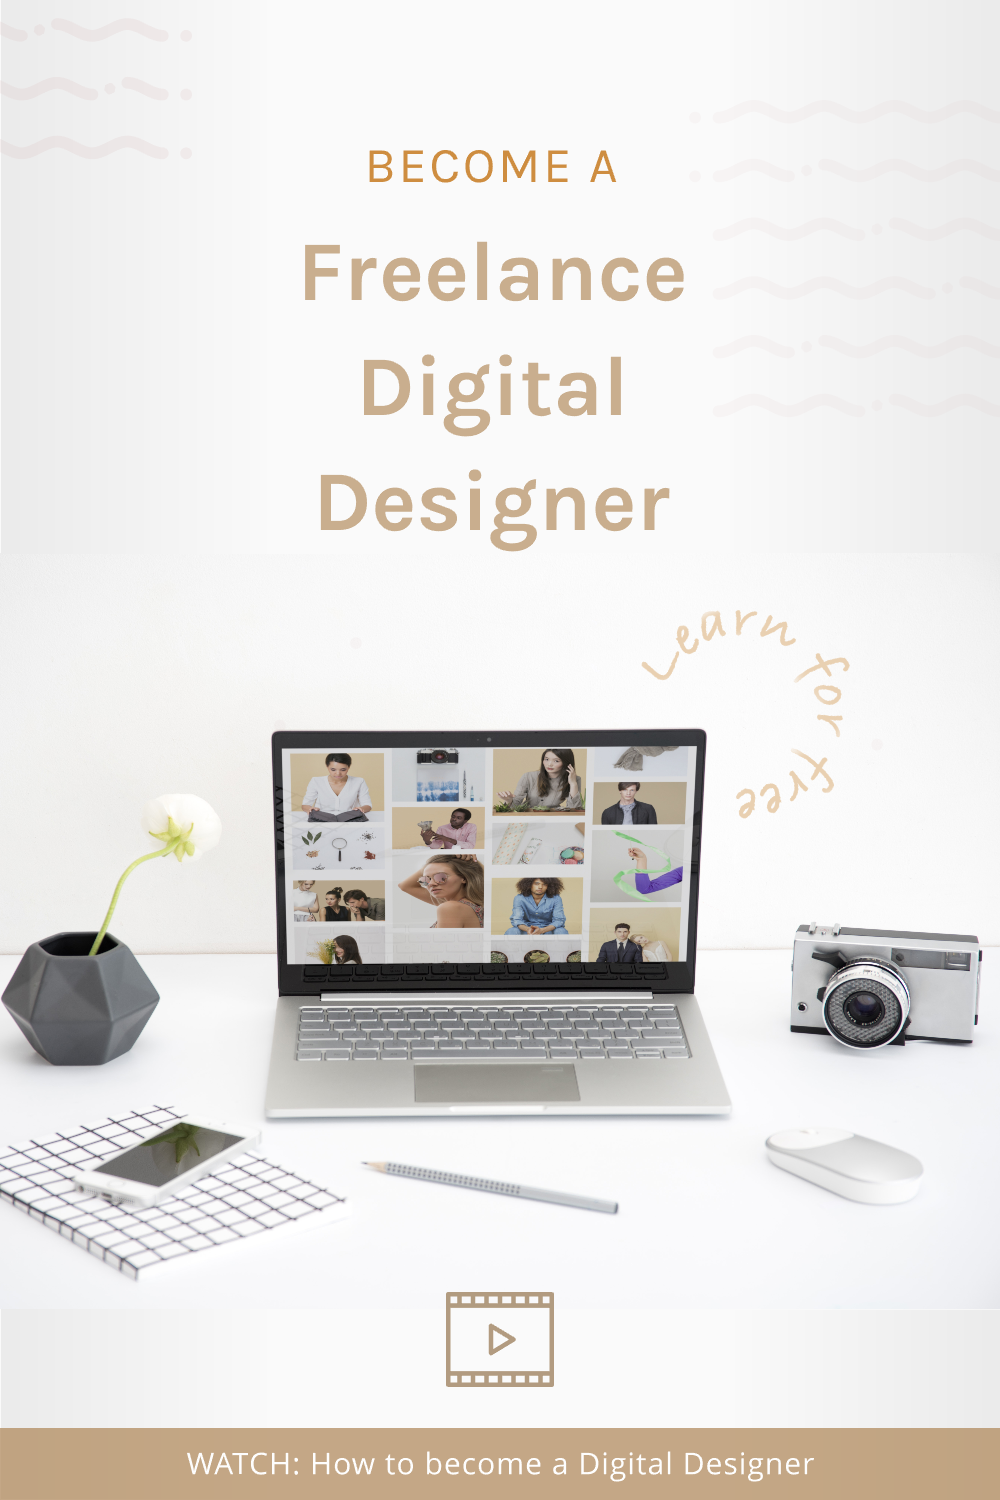 How To Become A Freelance Digital Designer In 2020 Digital Marketing Design Digital Design Design Skills